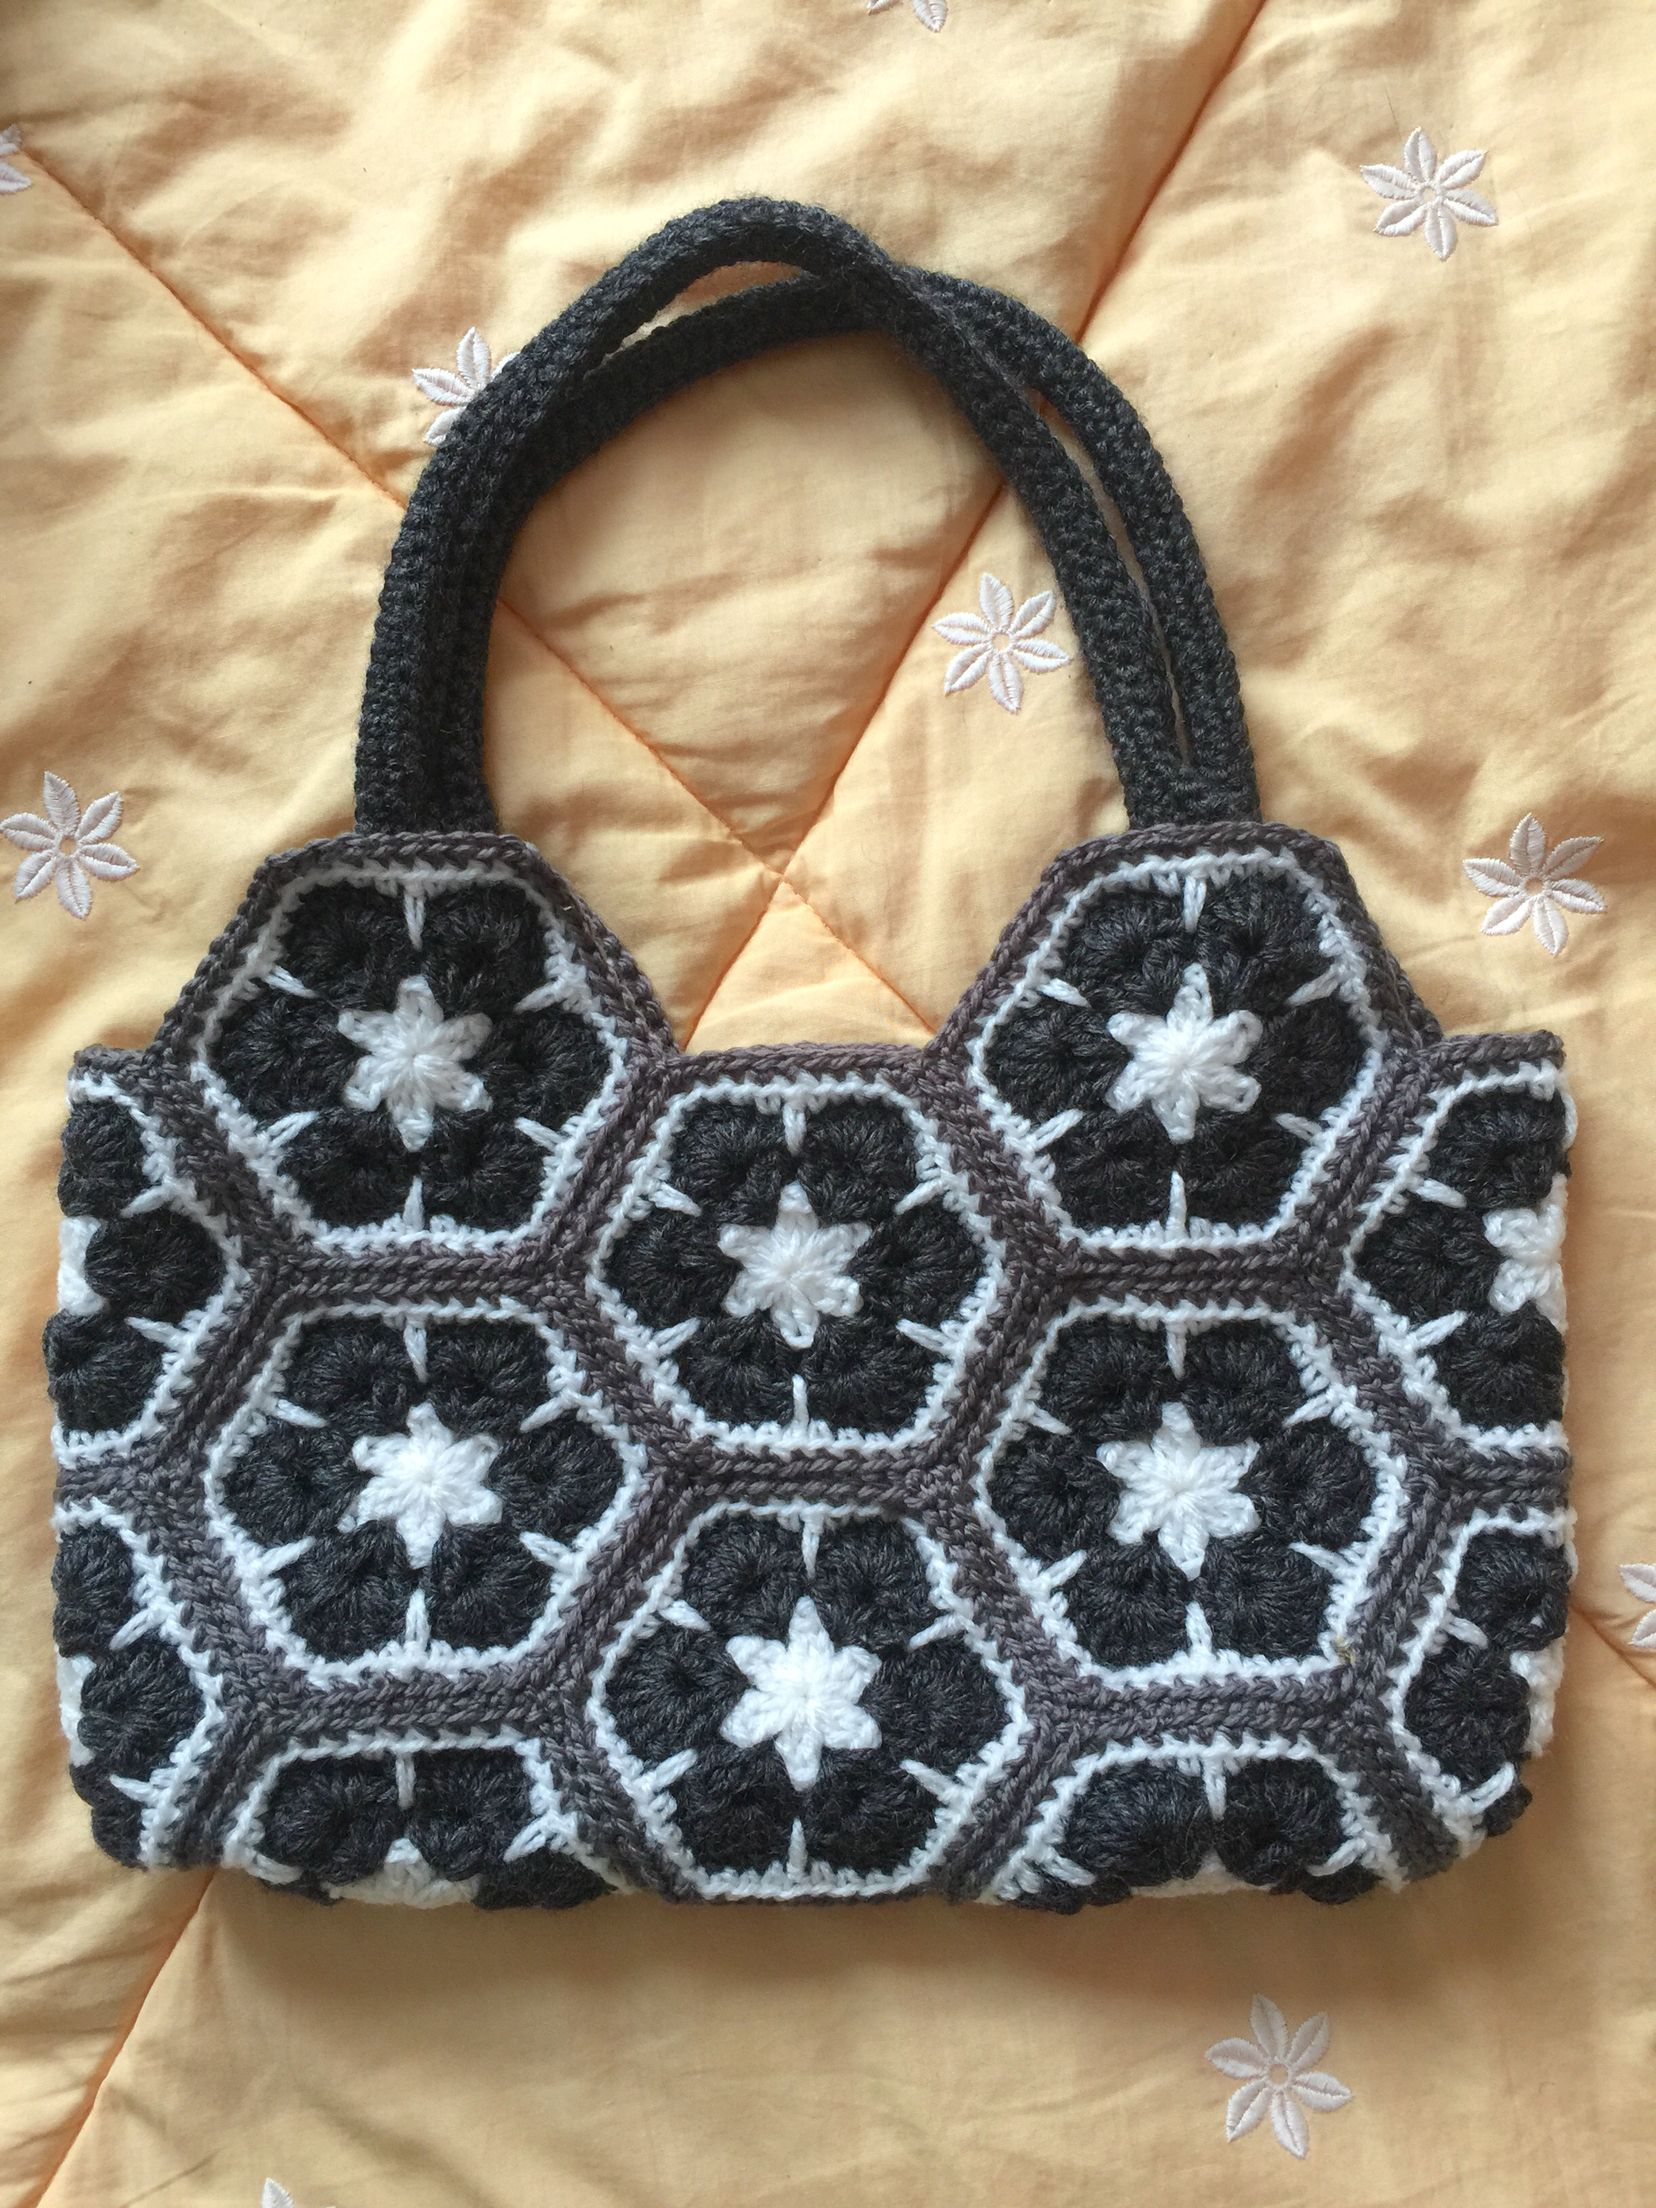 White Black and Grey African flower crochet bag | Yarn | Pinterest ...